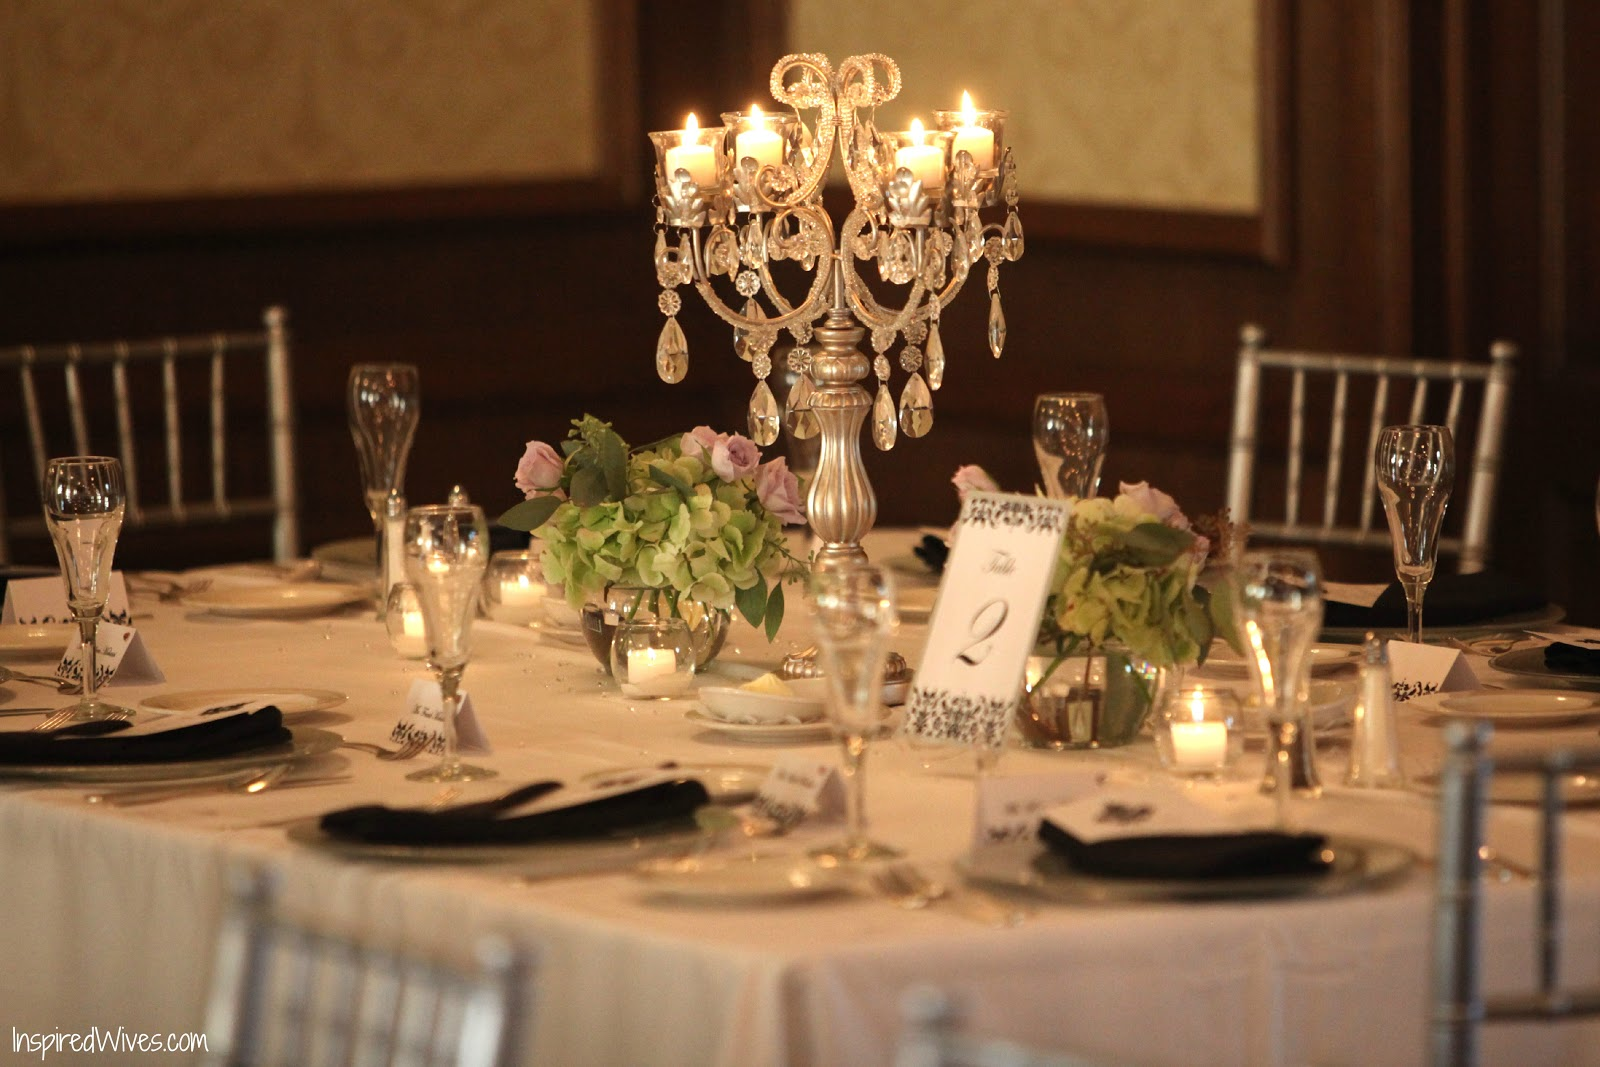 Inspired i dos candelabra wedding centerpieces for Center arrangements for weddings